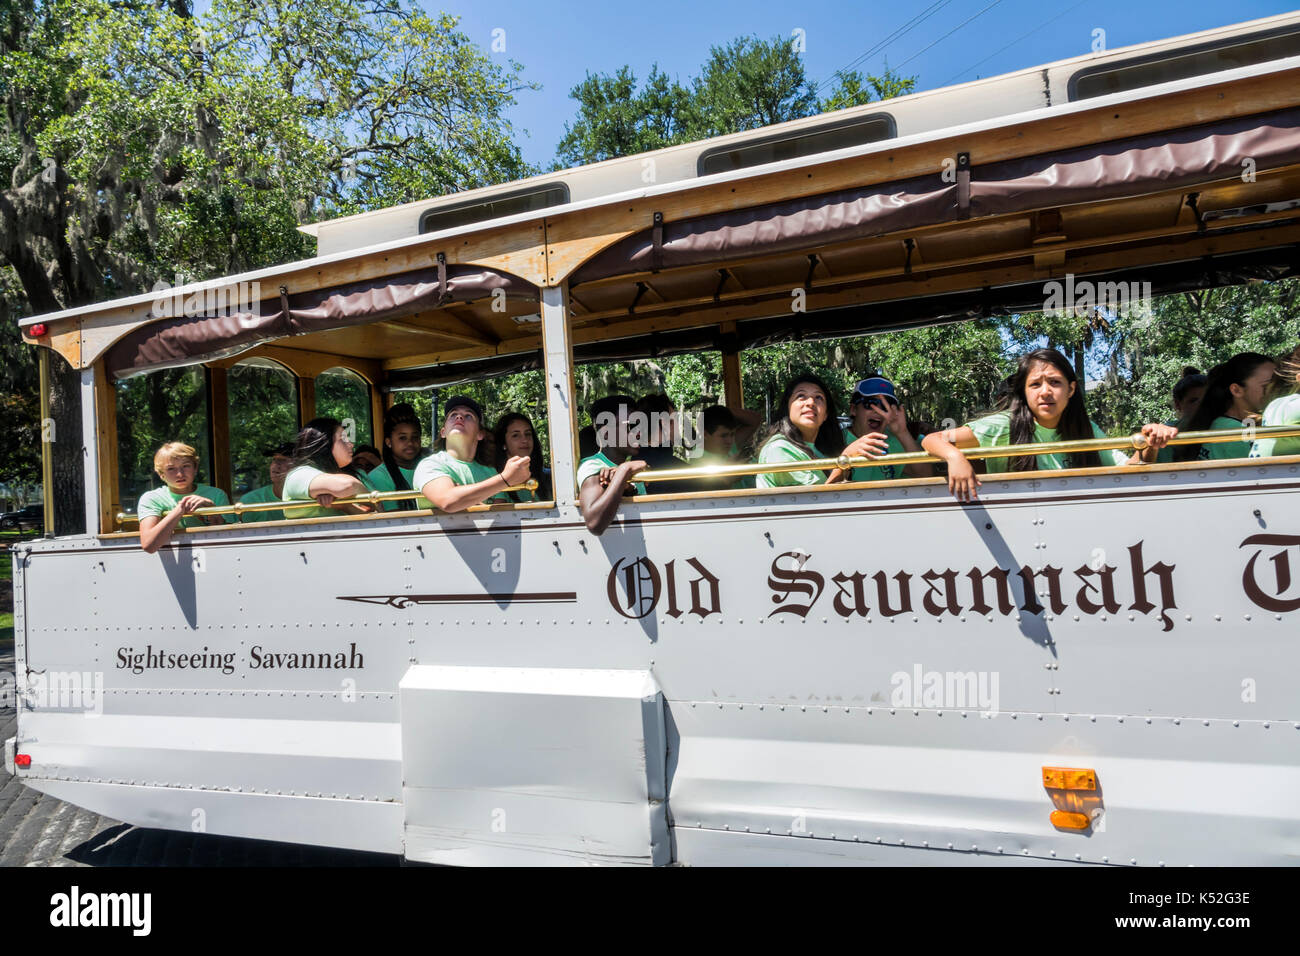 Savannah Georgia historic district Lafayette Square sightseeing trolley - Stock Image